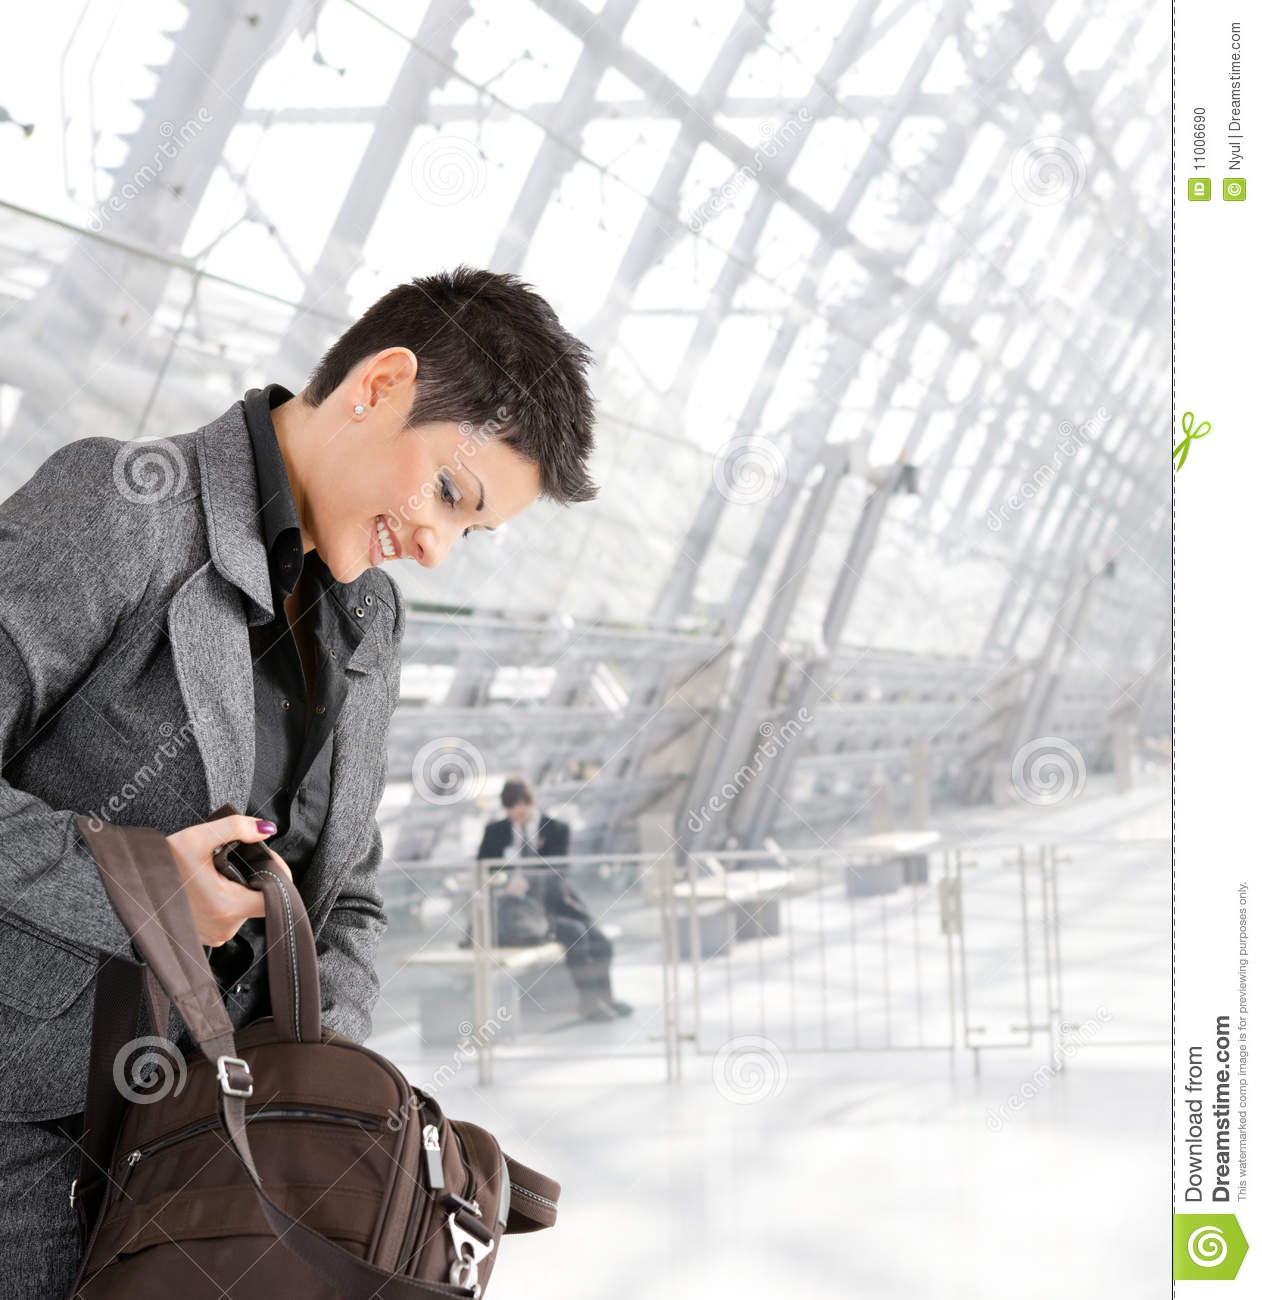 Businesswoman with laptop bag